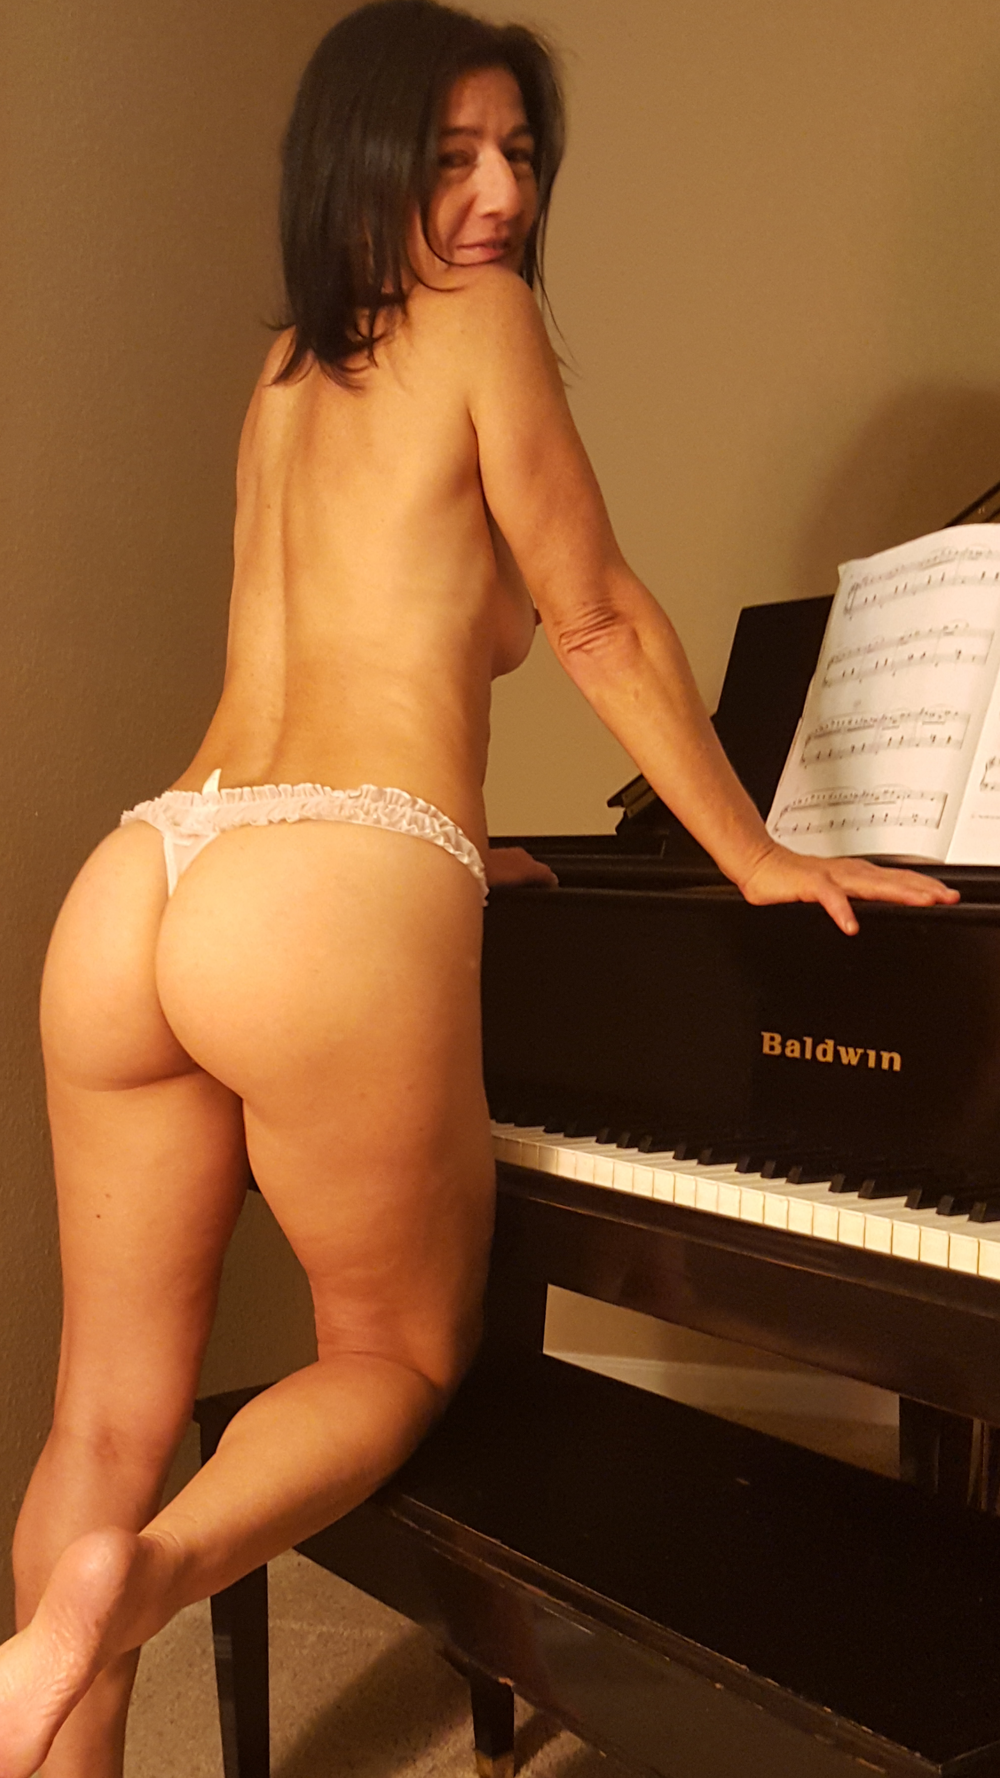 me ass baldwin piano.png